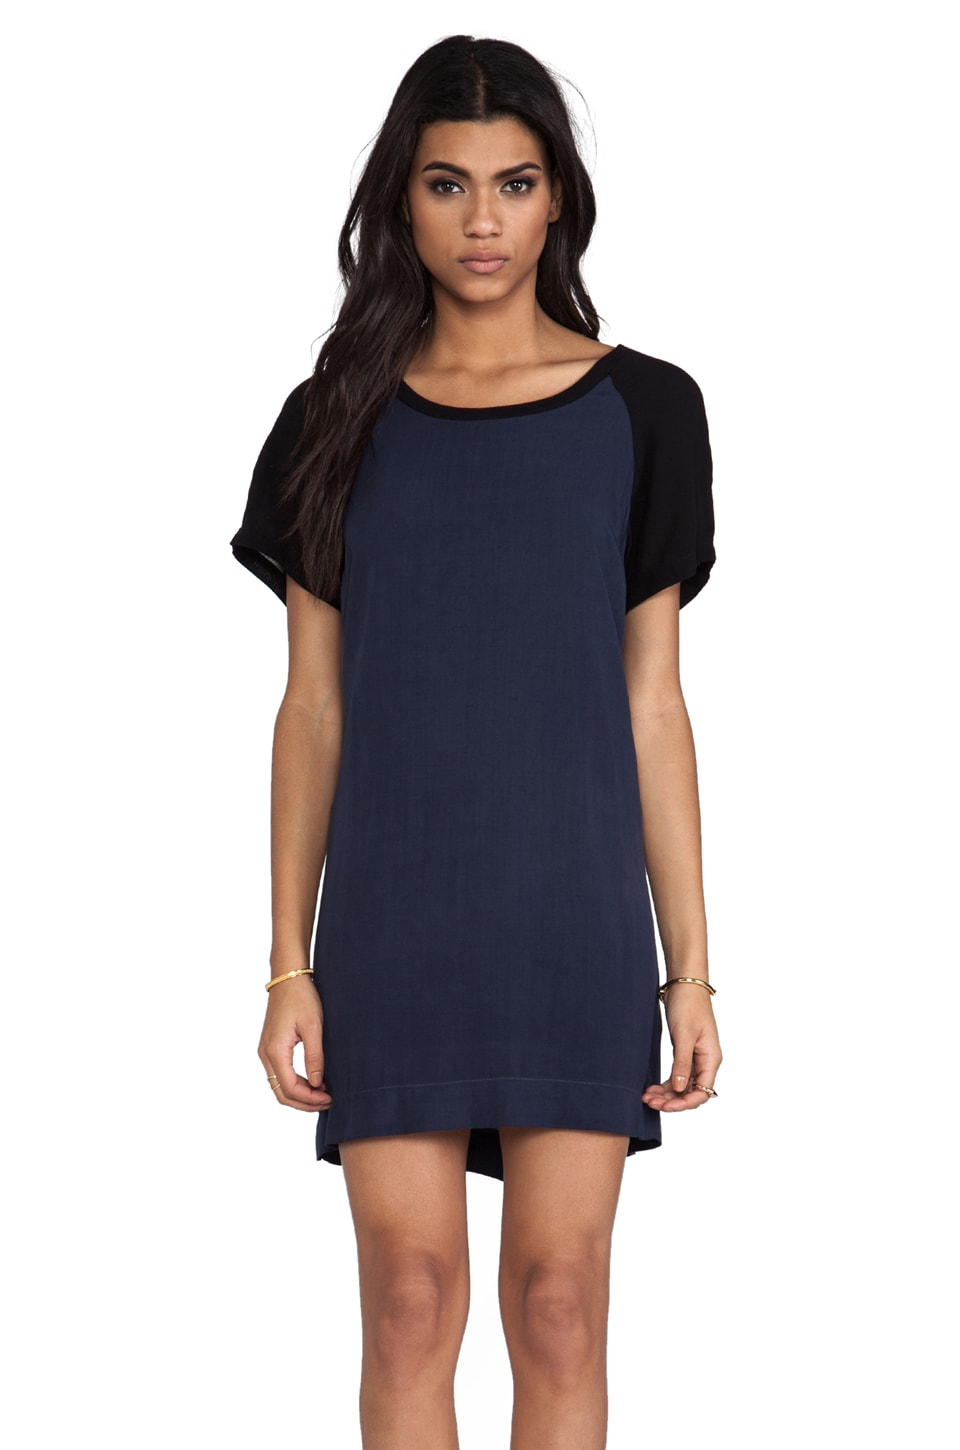 Splendid Color Blocking Dress in Navy